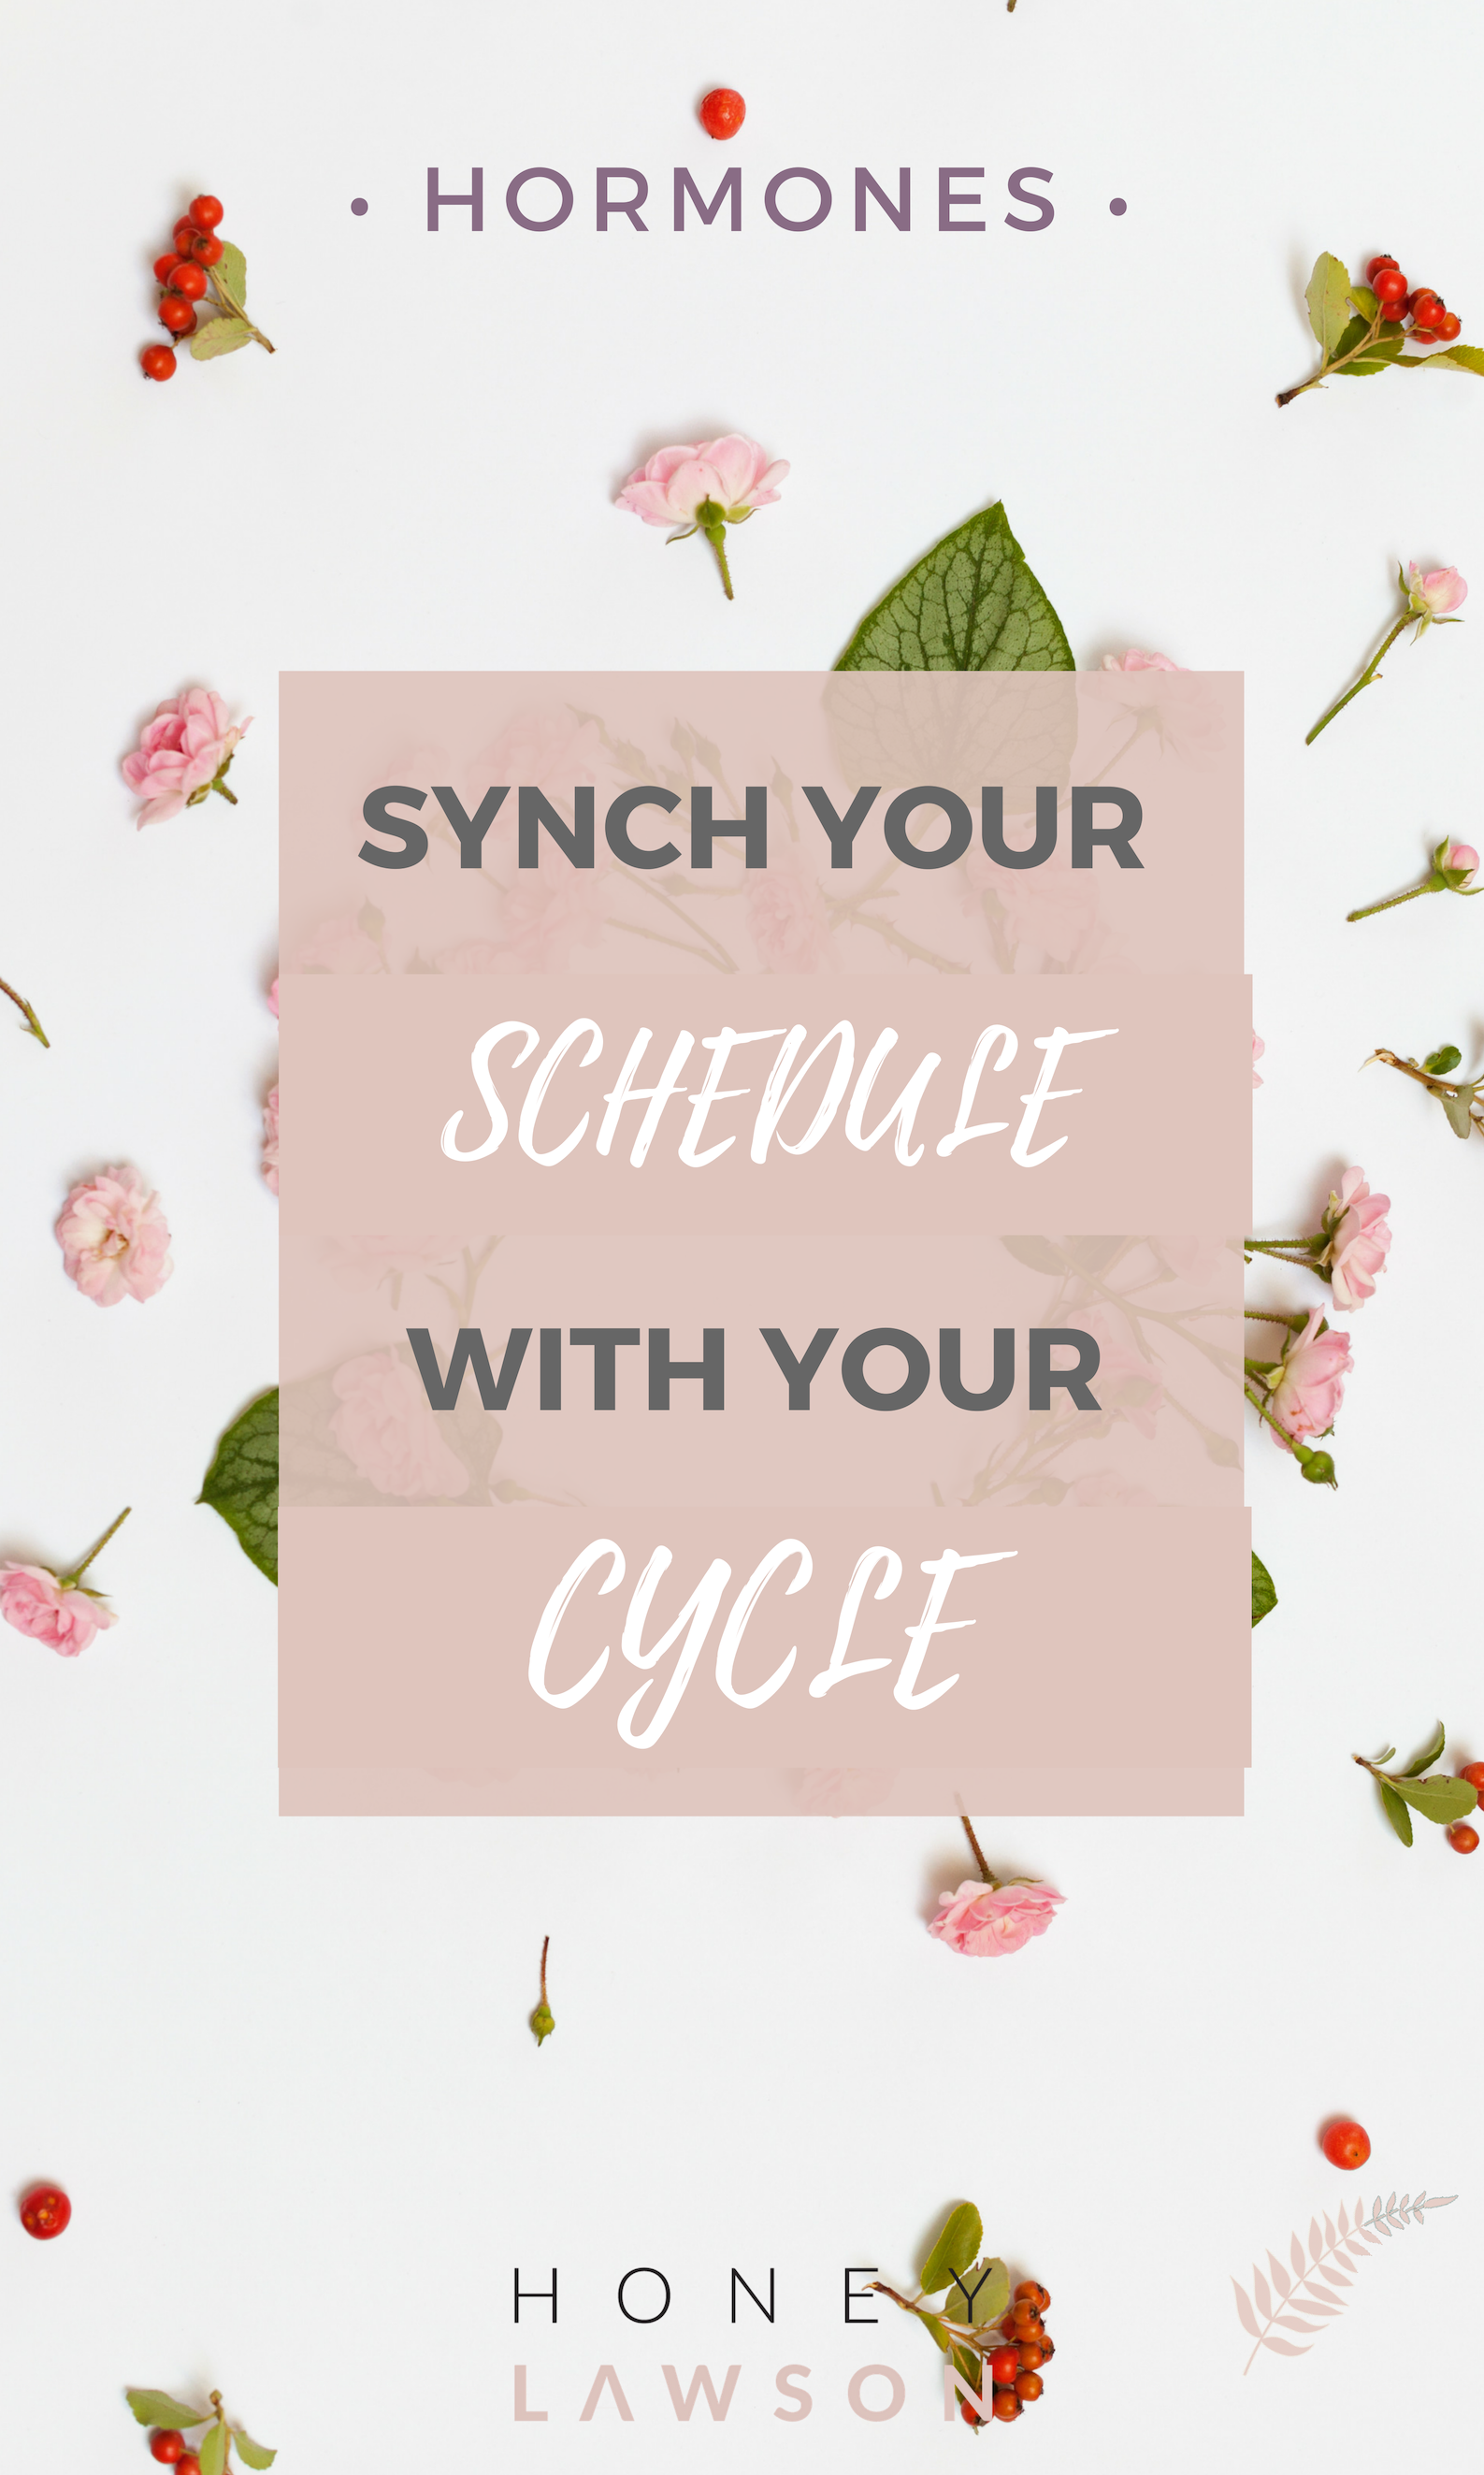 Synch your schedule to your menstrual cycle